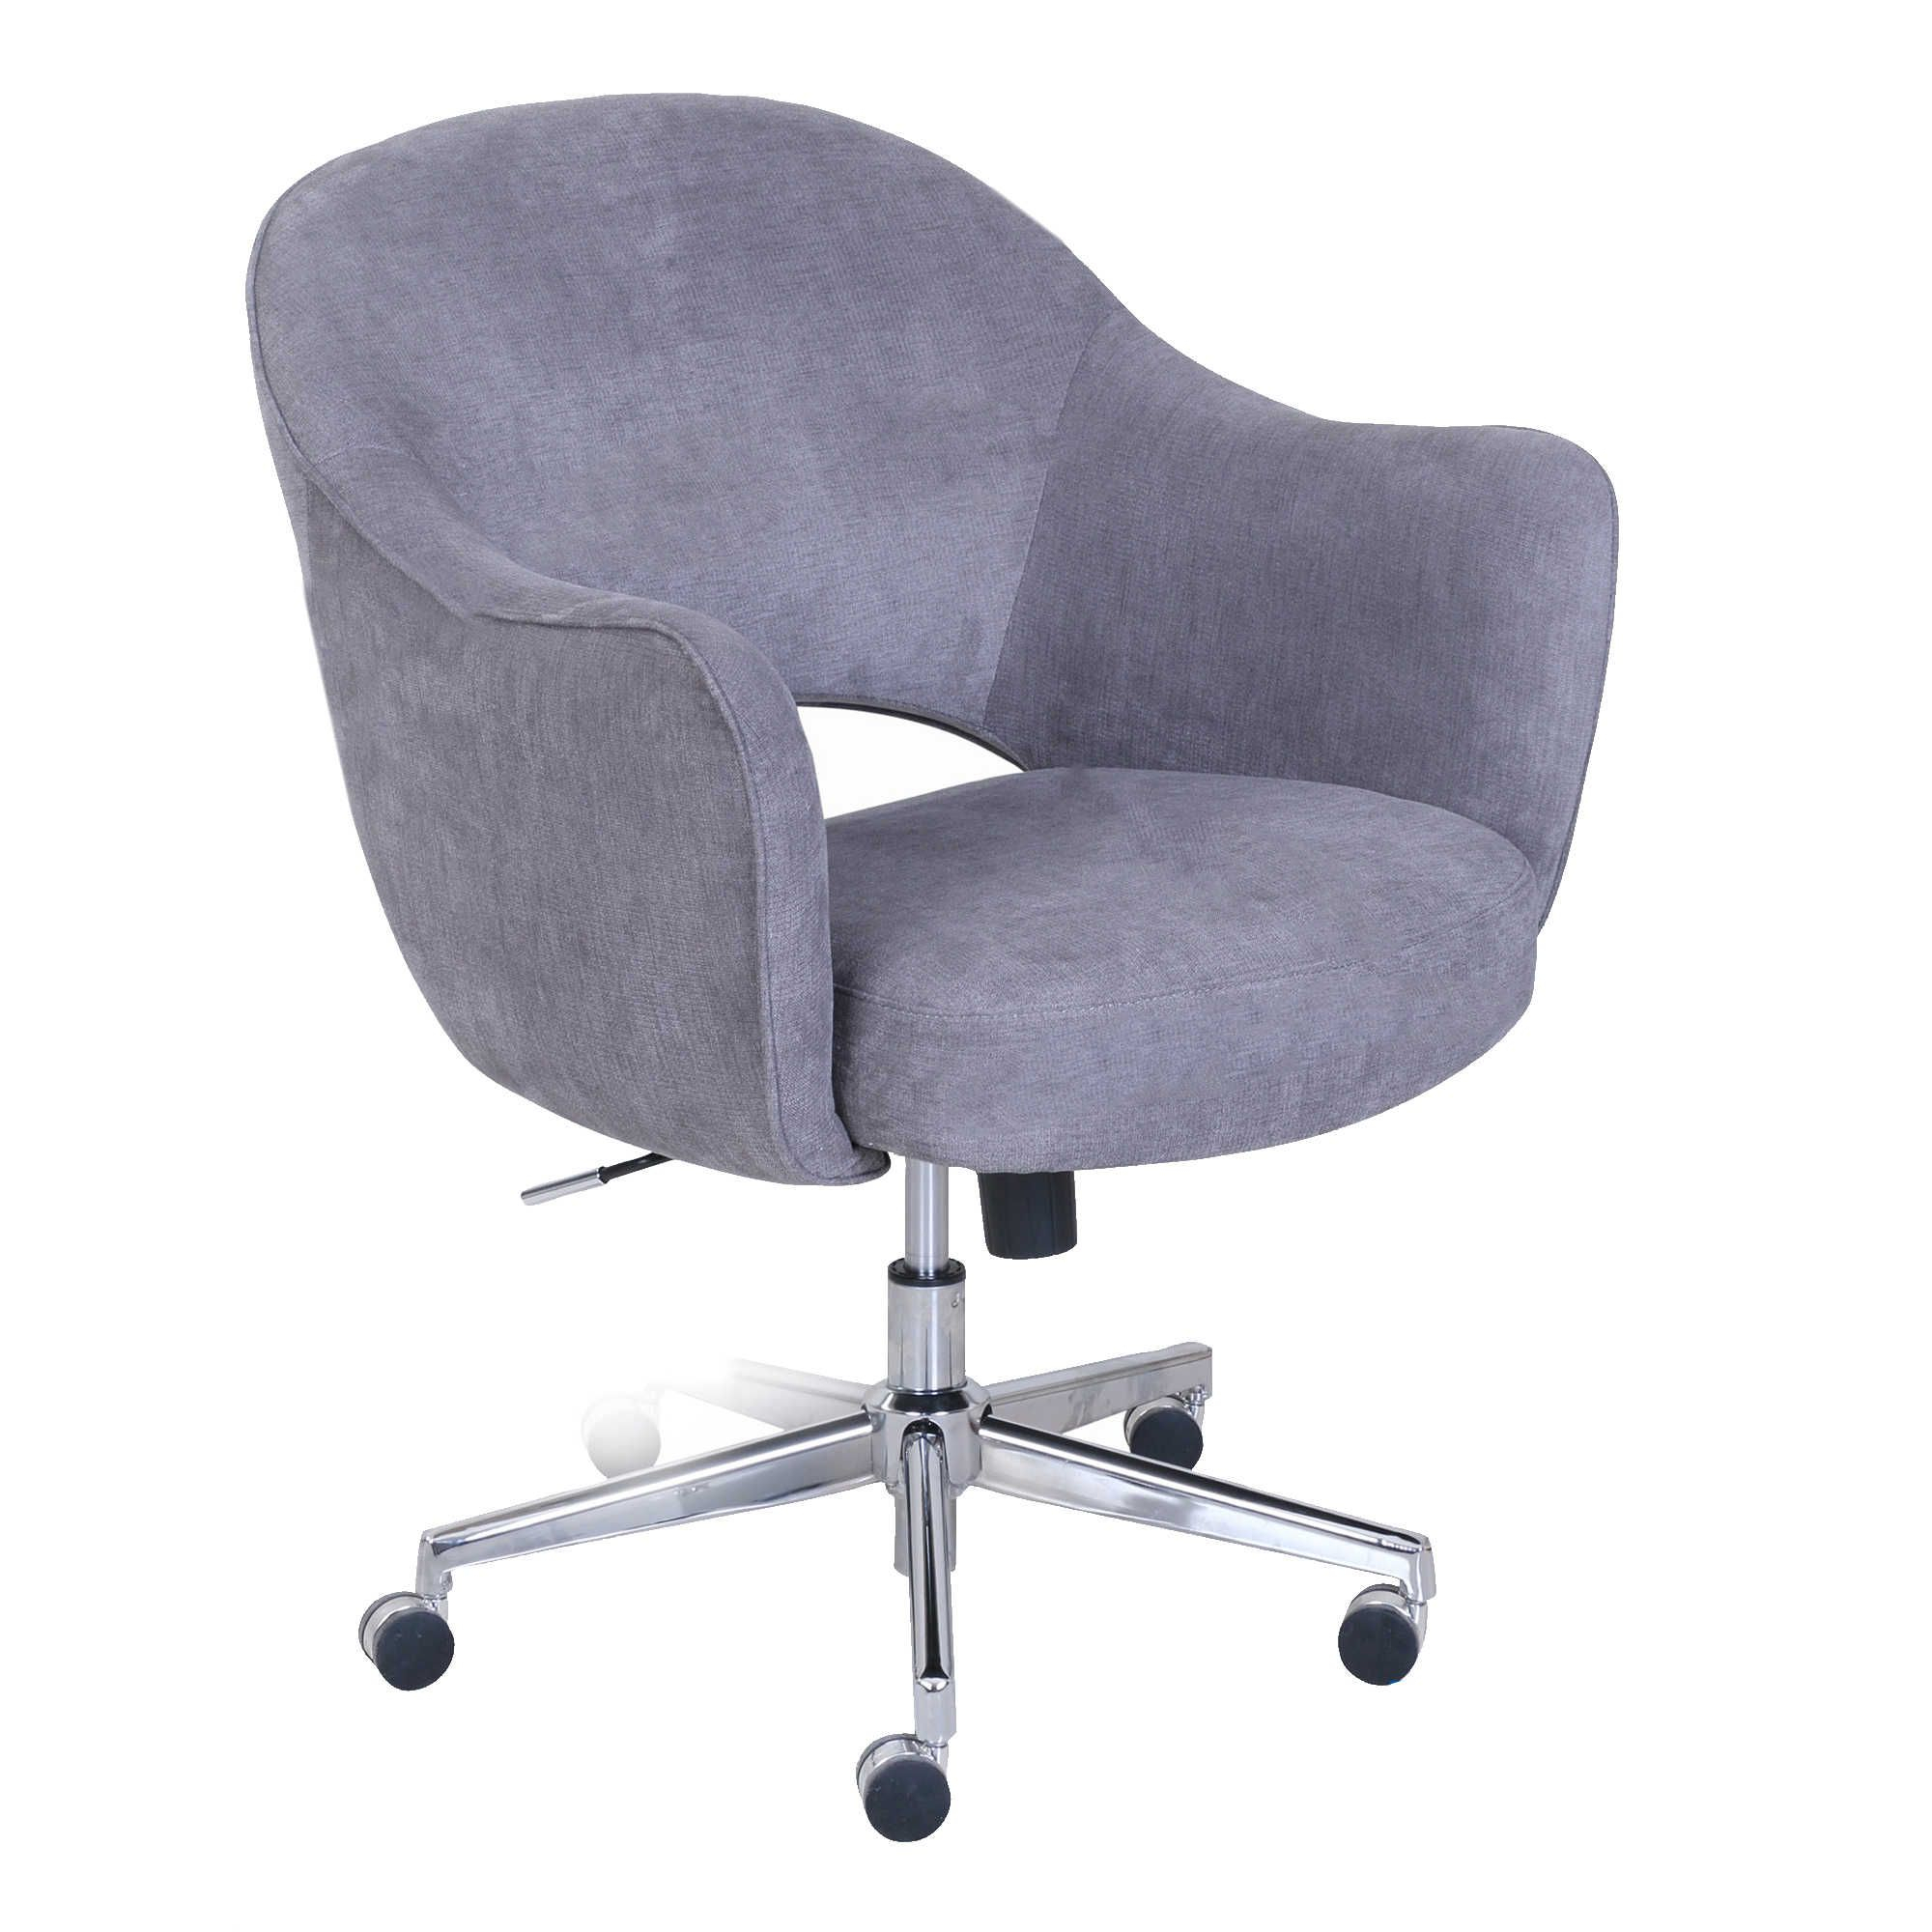 Serta® Valetta Home Office Chair In Dovetail Grey | Memory Foam In Mercer Foam Swivel Chairs (View 16 of 20)